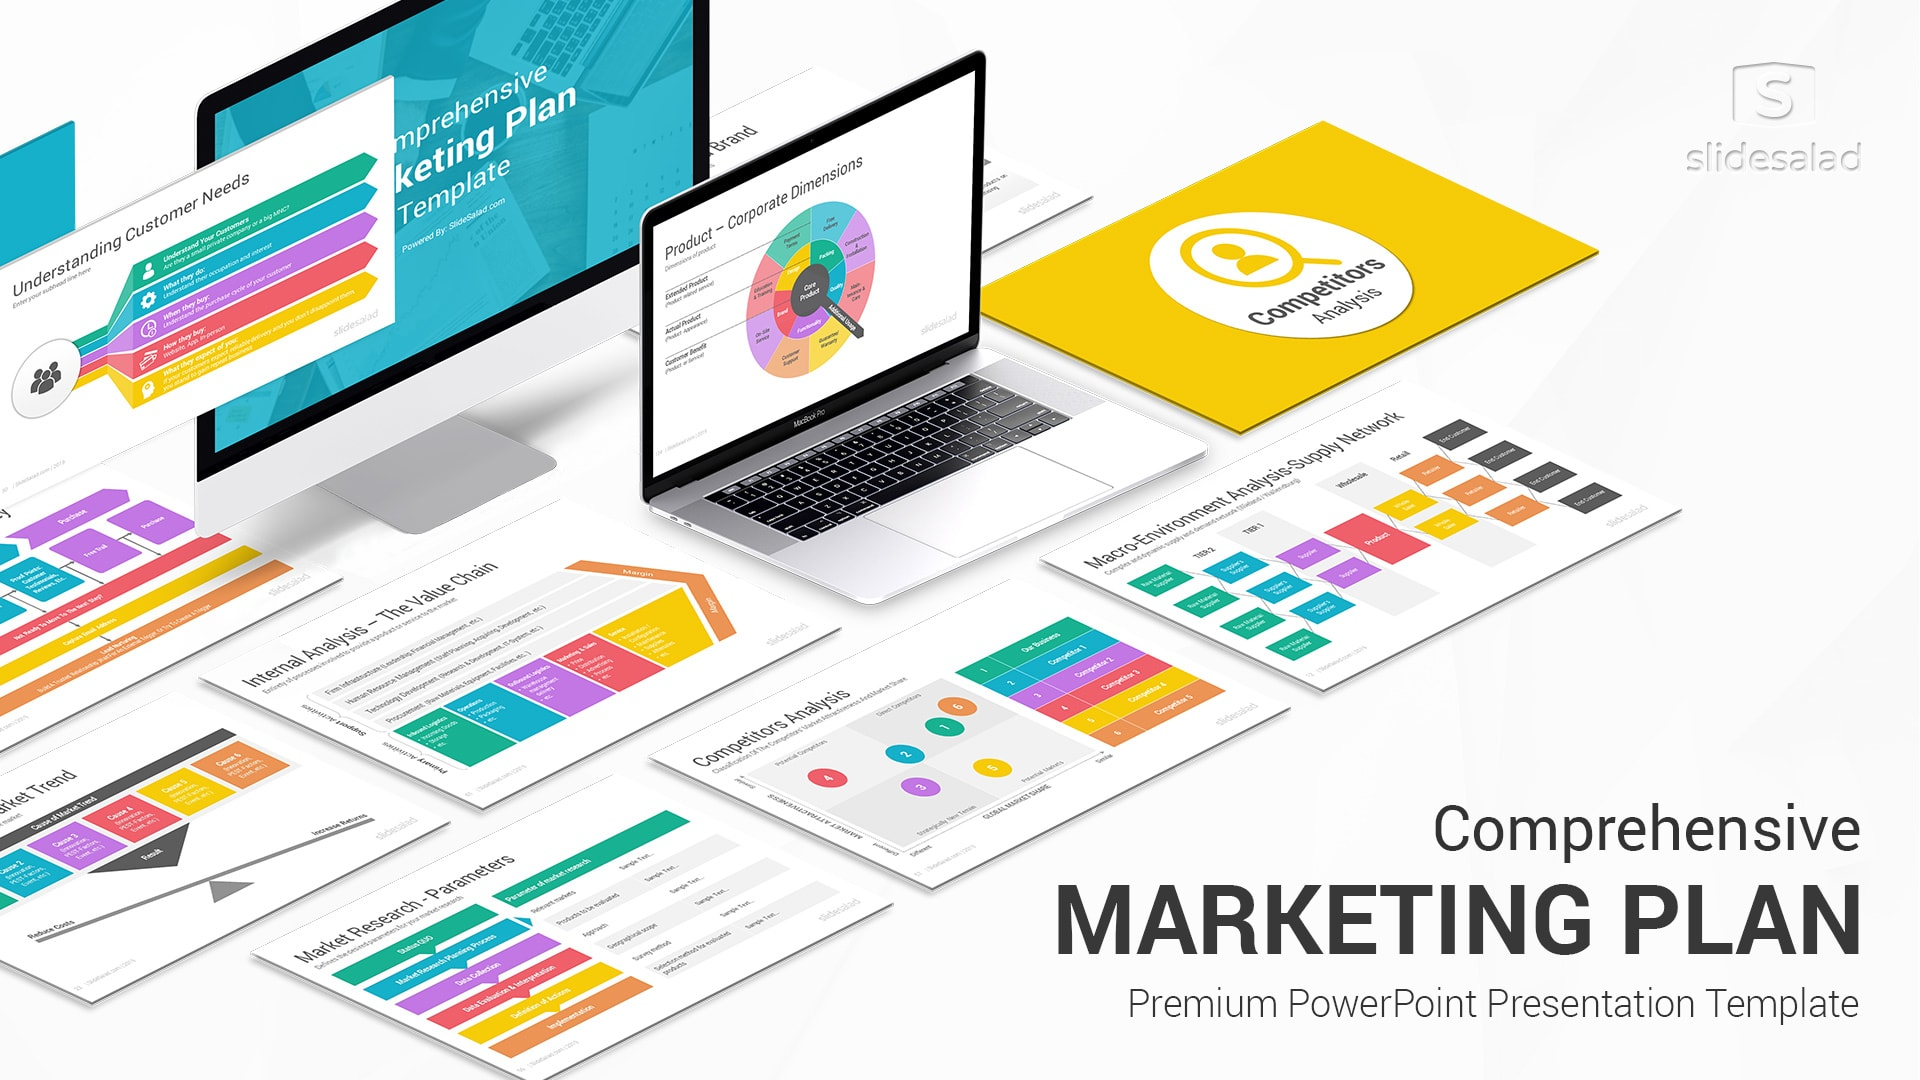 Best Marketing Plan PowerPoint (PPT) Template - Top Selling Awesome PowerPoint Templates